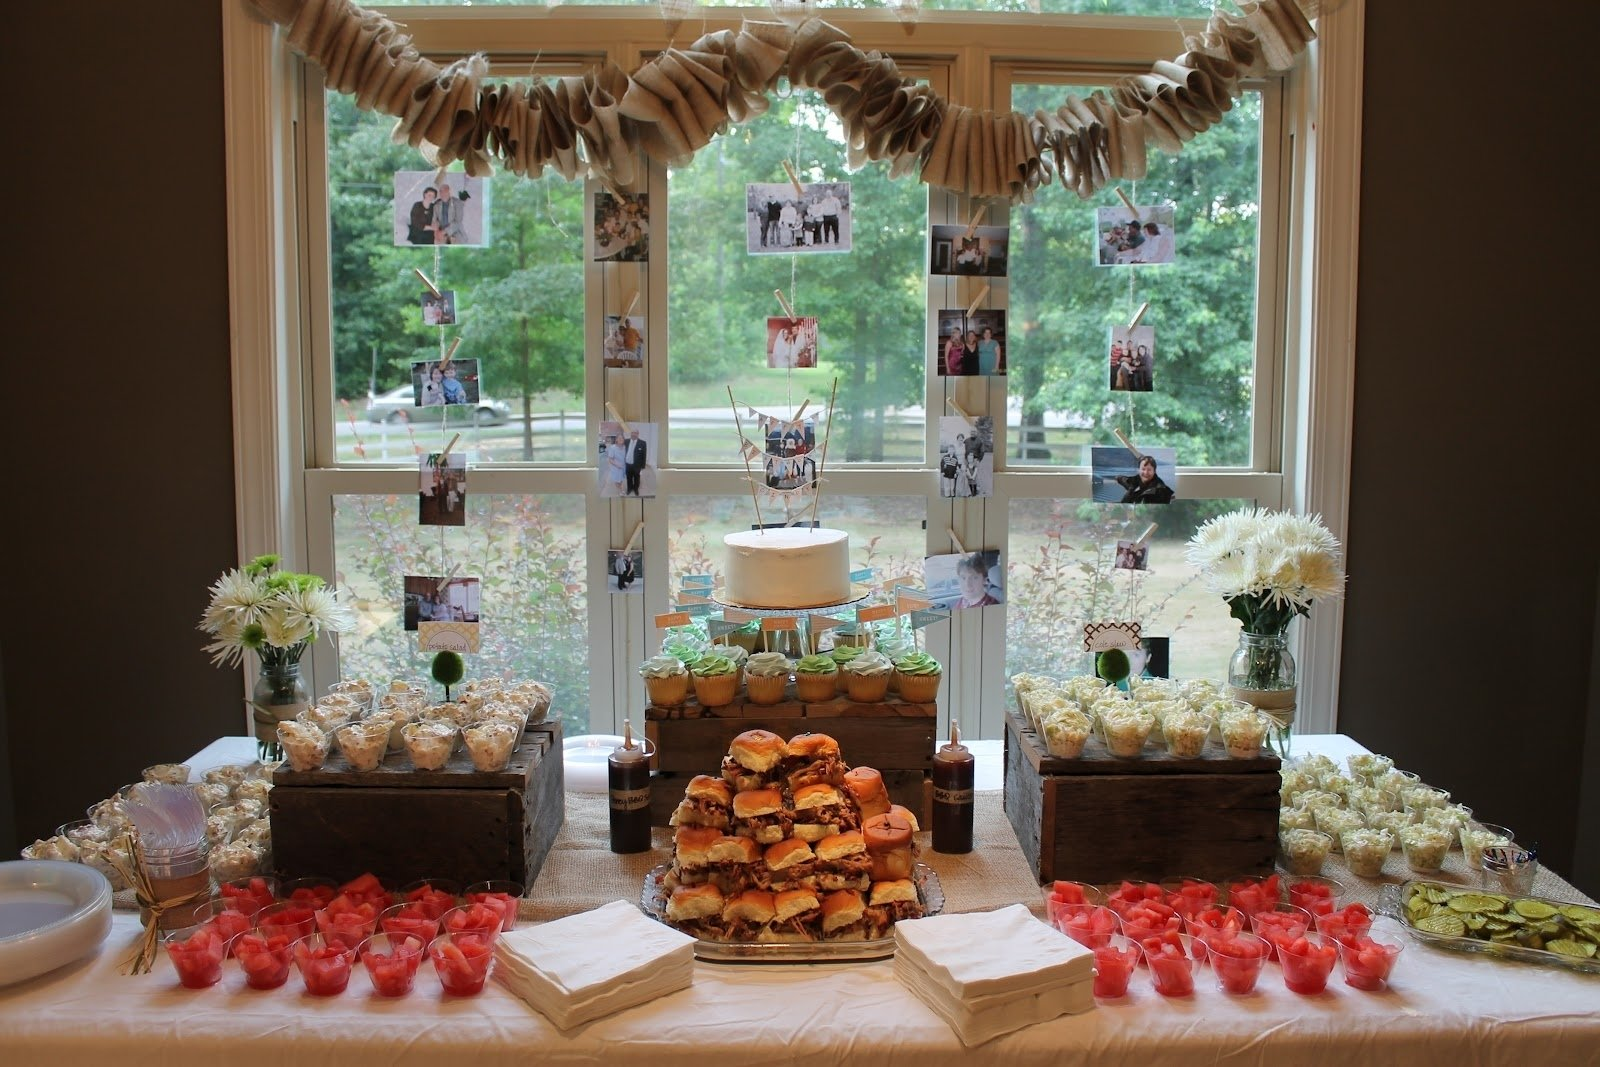 10 Spectacular Ideas For A Surprise Birthday Party barbeque and burlap a surprise 50th birthday party life in the 14 2020